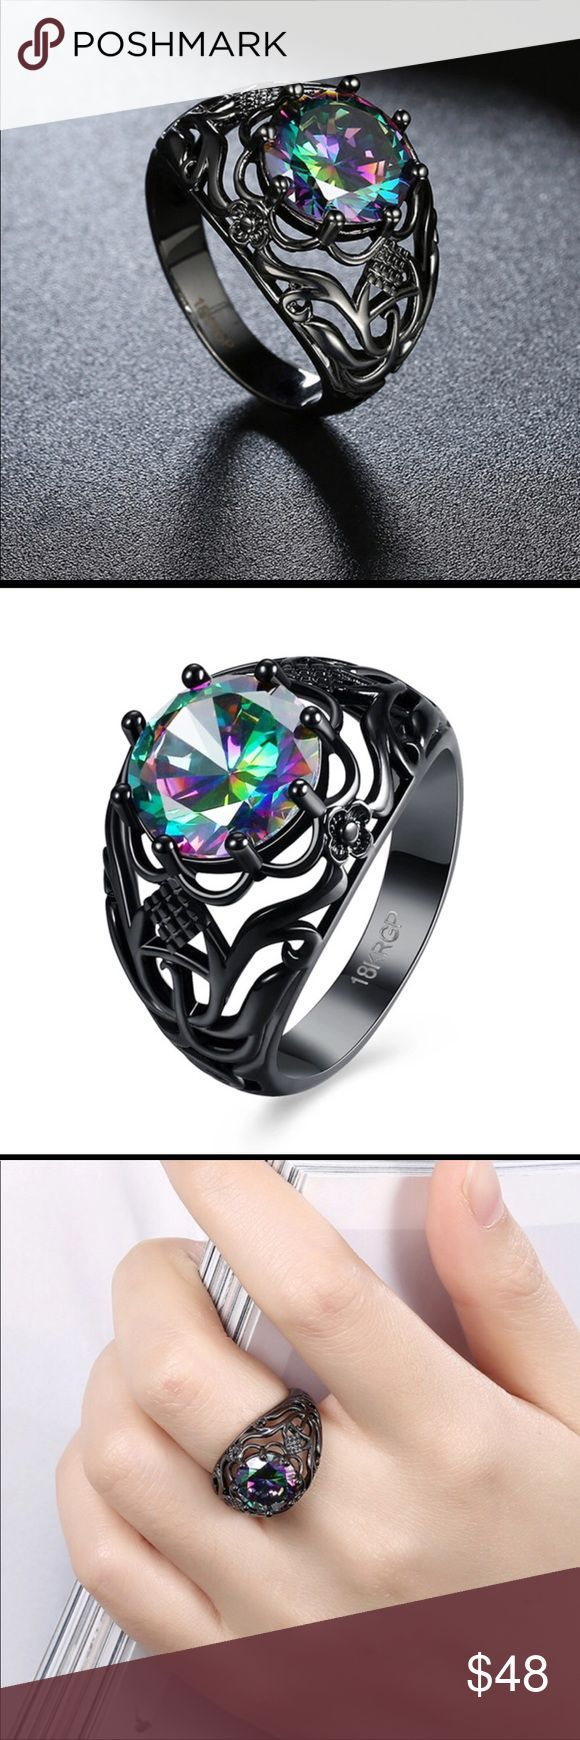 18k Black Gold Plated Rainbow Crystal Stone Ring Beautiful 18k Black Gold Plated Vintage Style Rainbow Crystal Stone Ring with stunningly gorgeous filigree details.  Sizes 7 and 8 available, comes with ring box. Jewelry Rings #jewelryrings